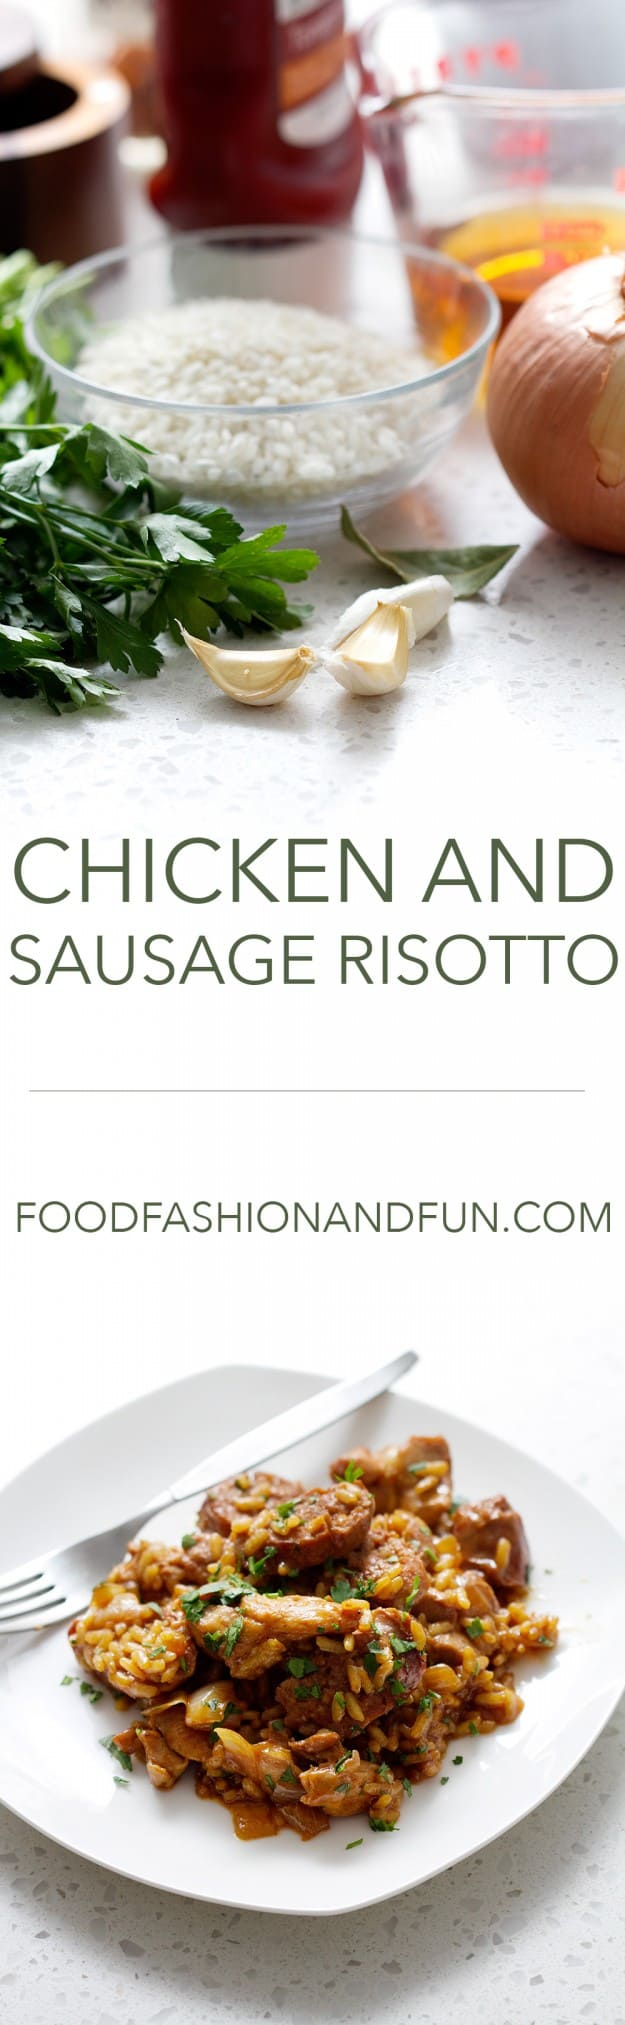 Chicken and Sausage Risotto